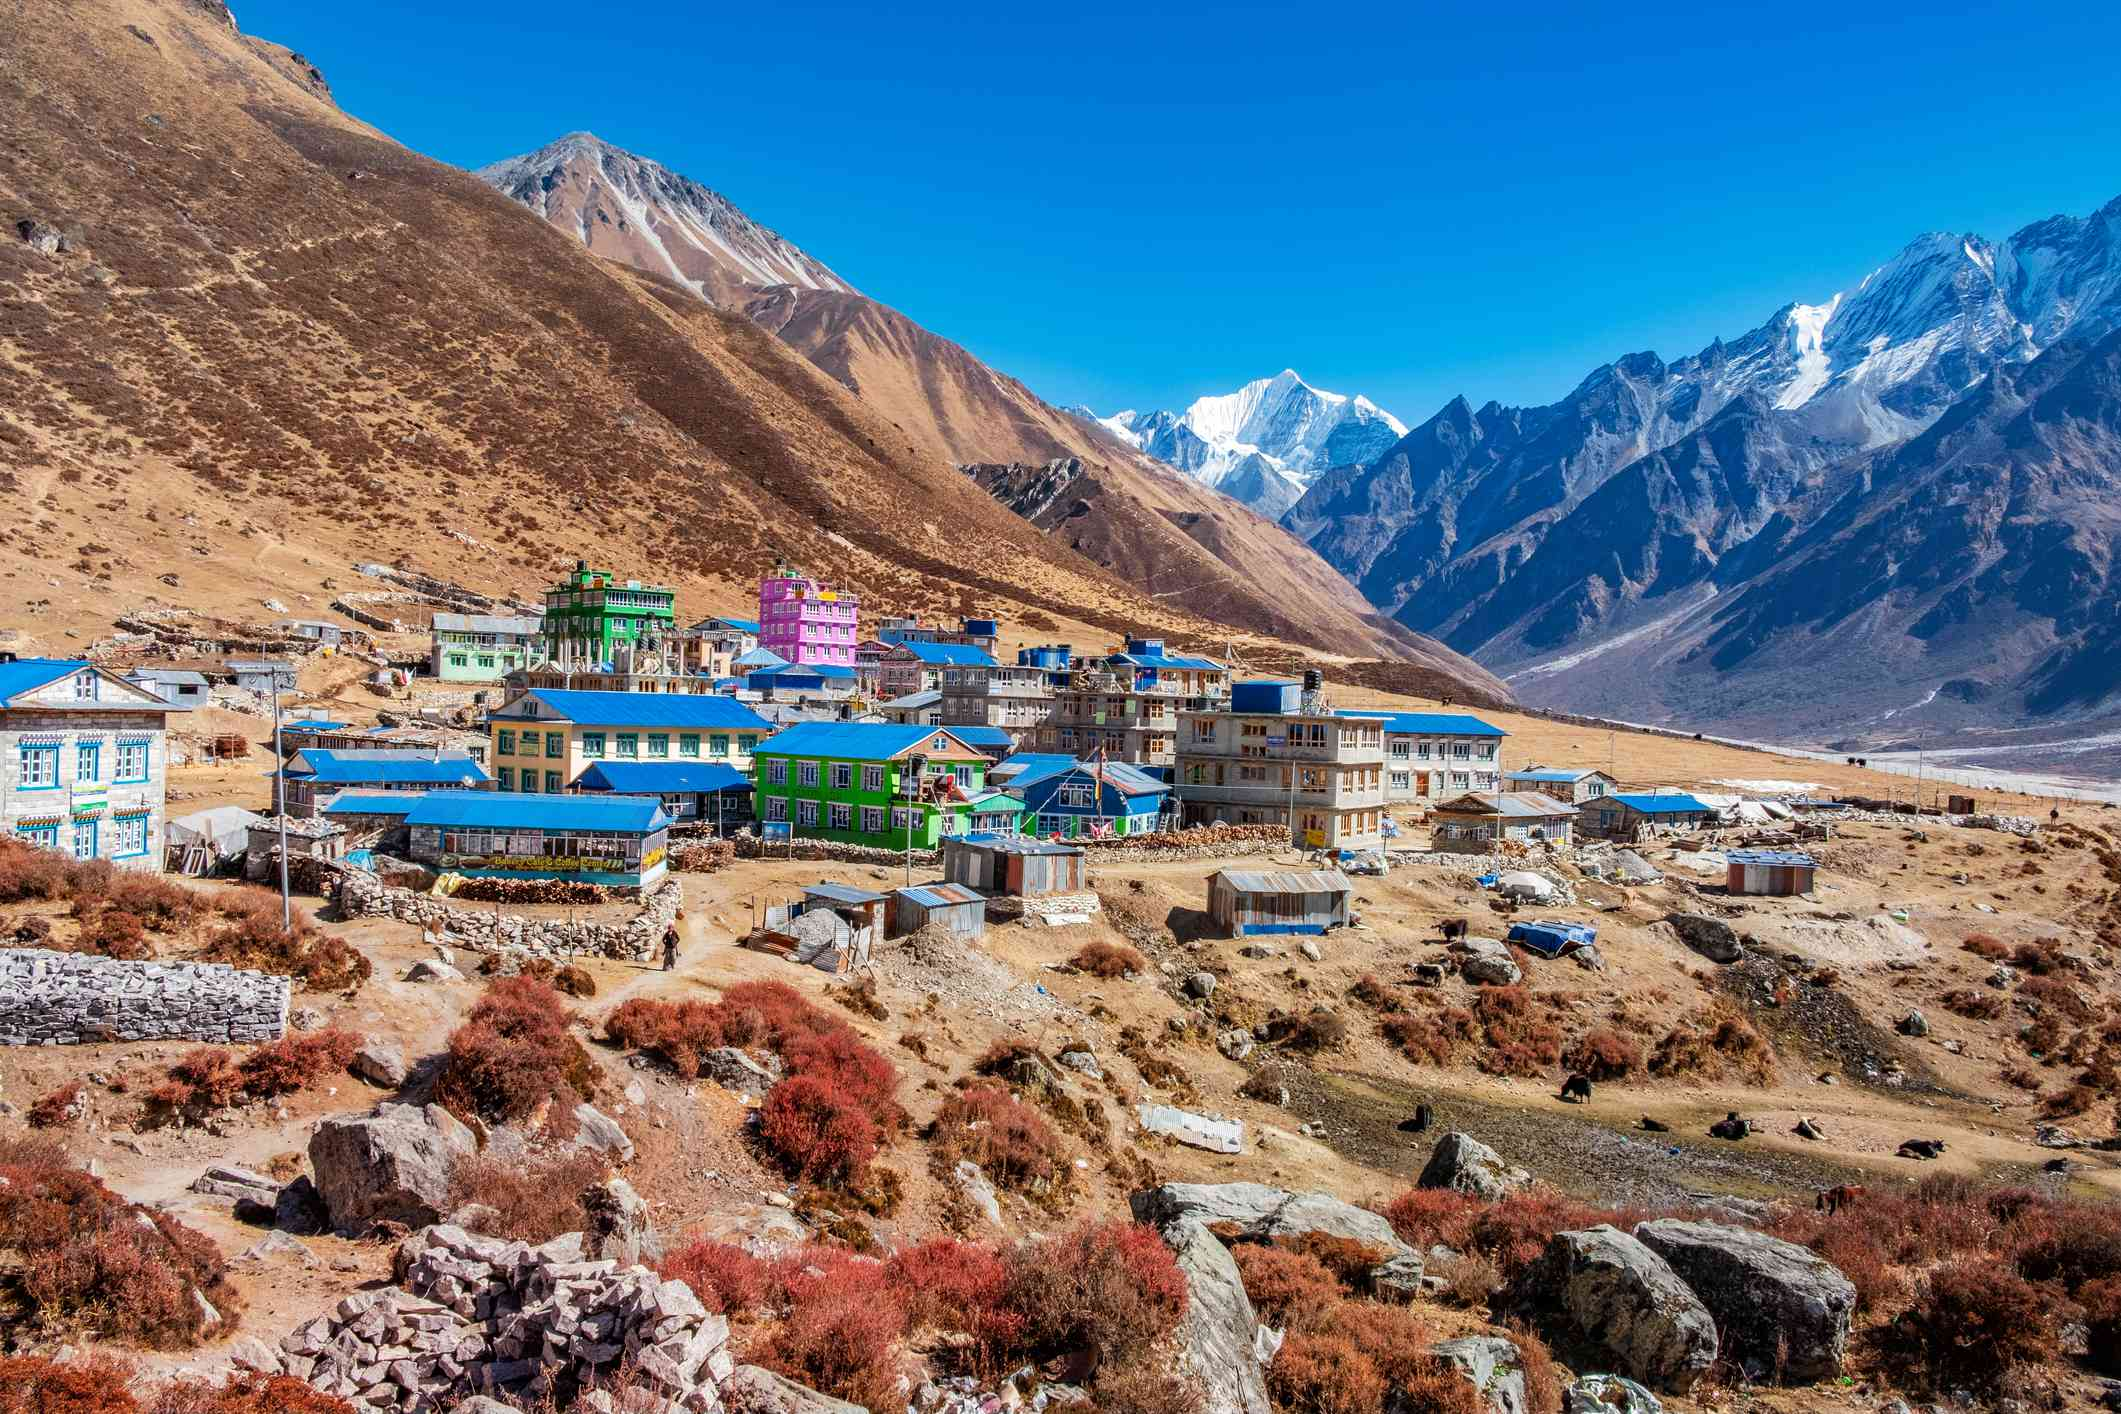 blue roofed buildings surrounded by mountains